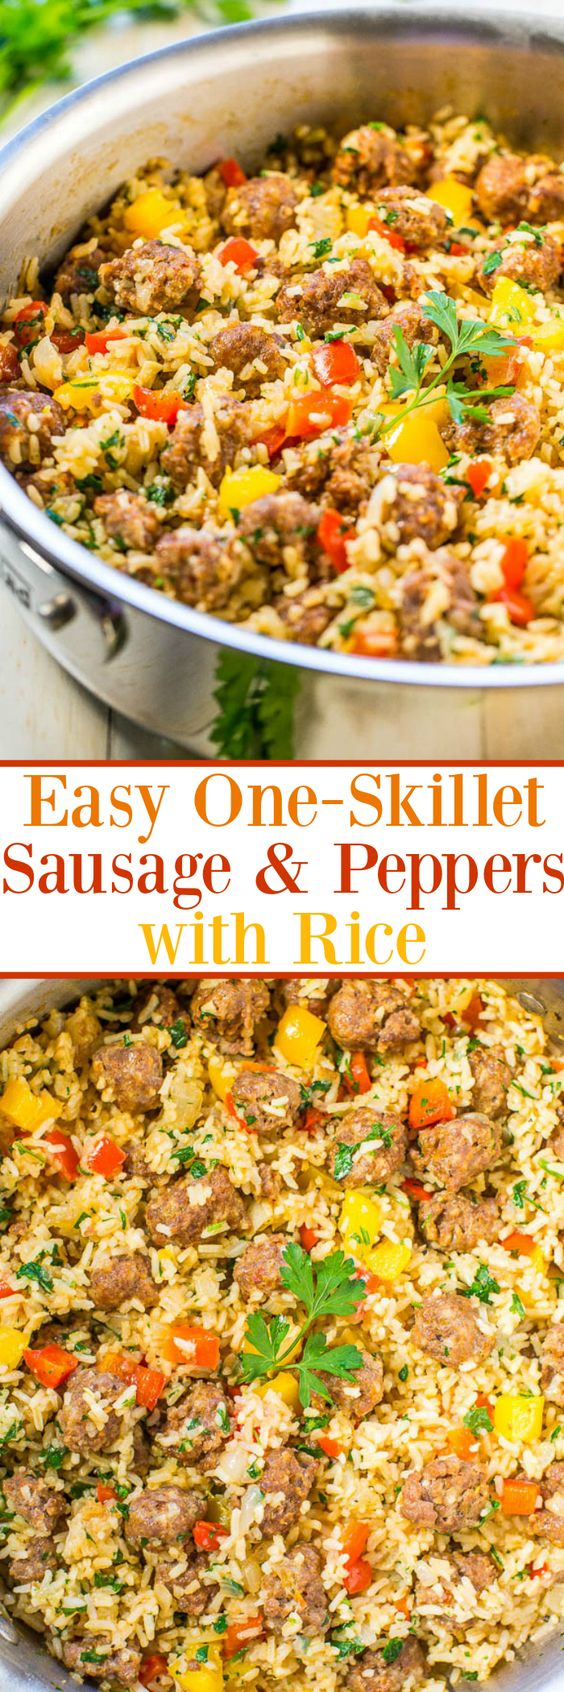 Easy One-Skillet Sausage and Peppers with Rice - Juicy sausage, crisp peppers, onions, and rice all cook together in one skillet! Makes cleanup a breeze! Packed with flavor and ready in 30 minutes!!